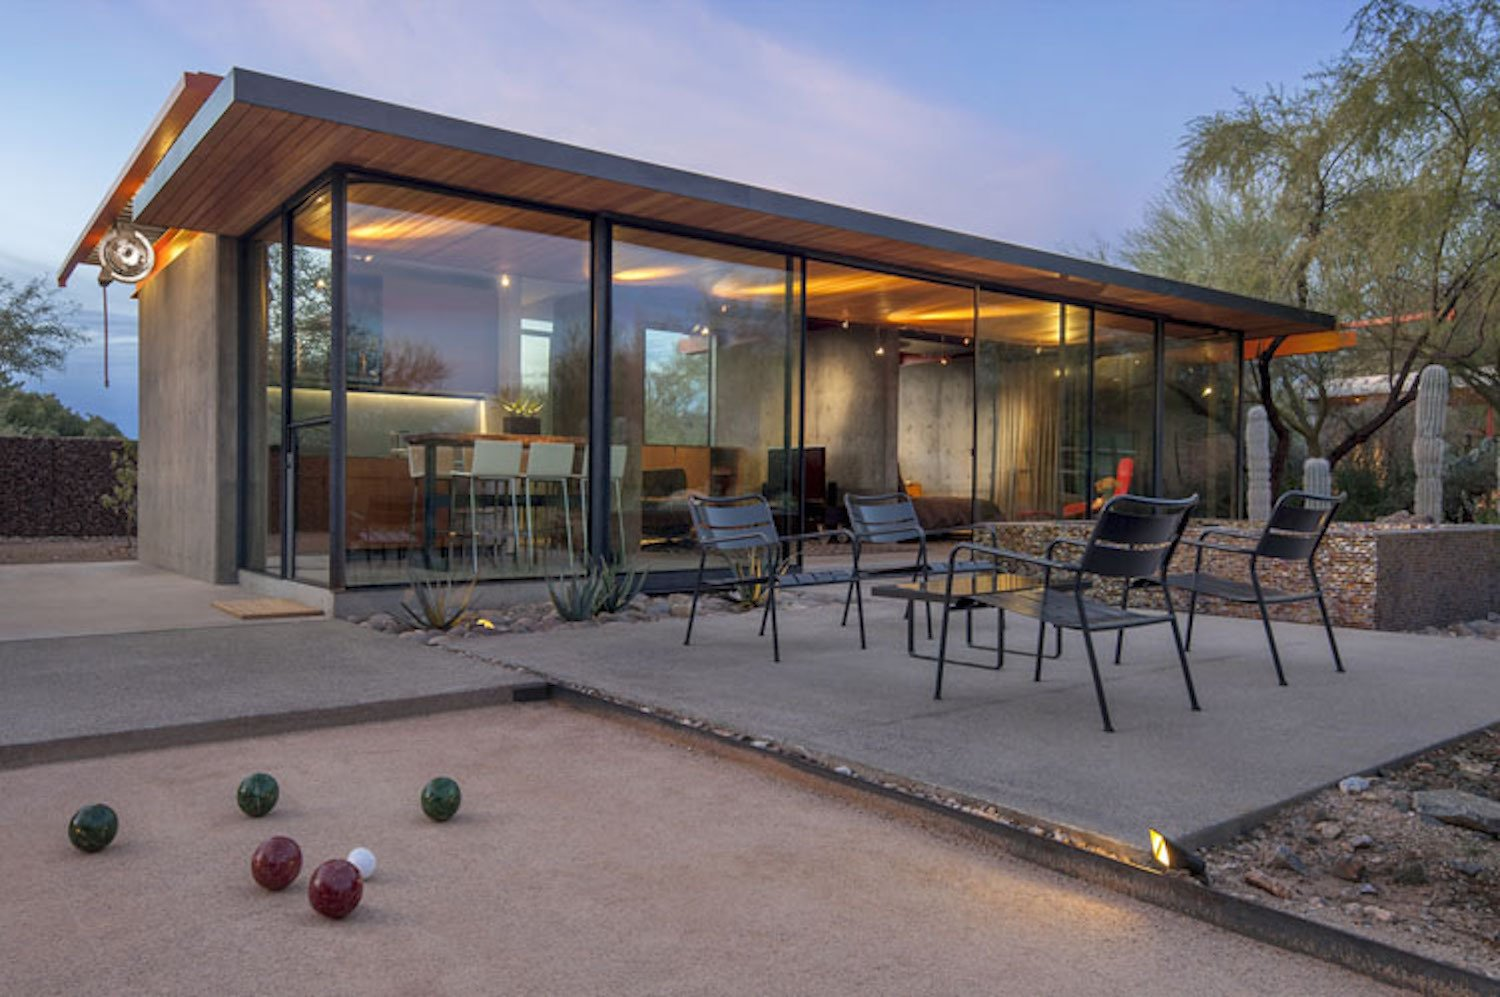 Outdoor, Landscape Lighting, Back Yard, Concrete Patio, Porch, Deck, Boulders, and Desert  Photo 6 of 12 in An Old Horse Barn Is Repurposed as a Chic Desert Guesthouse